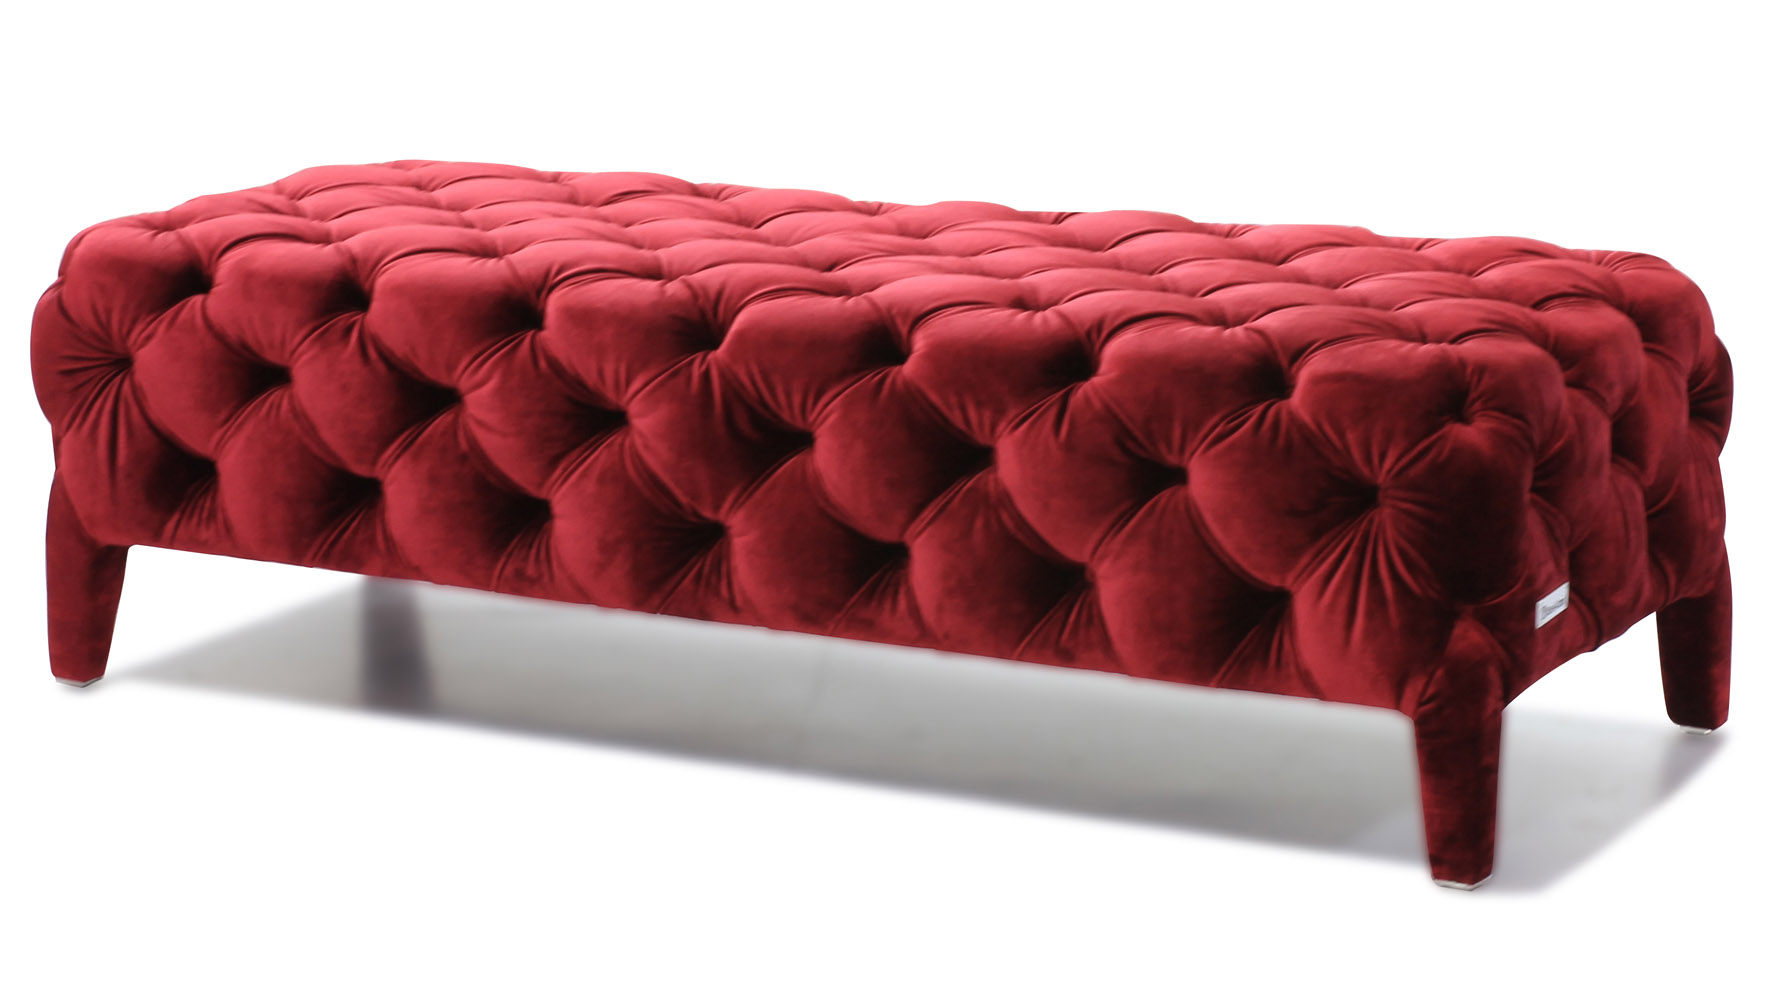 modern red velour tufted oslo bedroom bench | zuri furniture